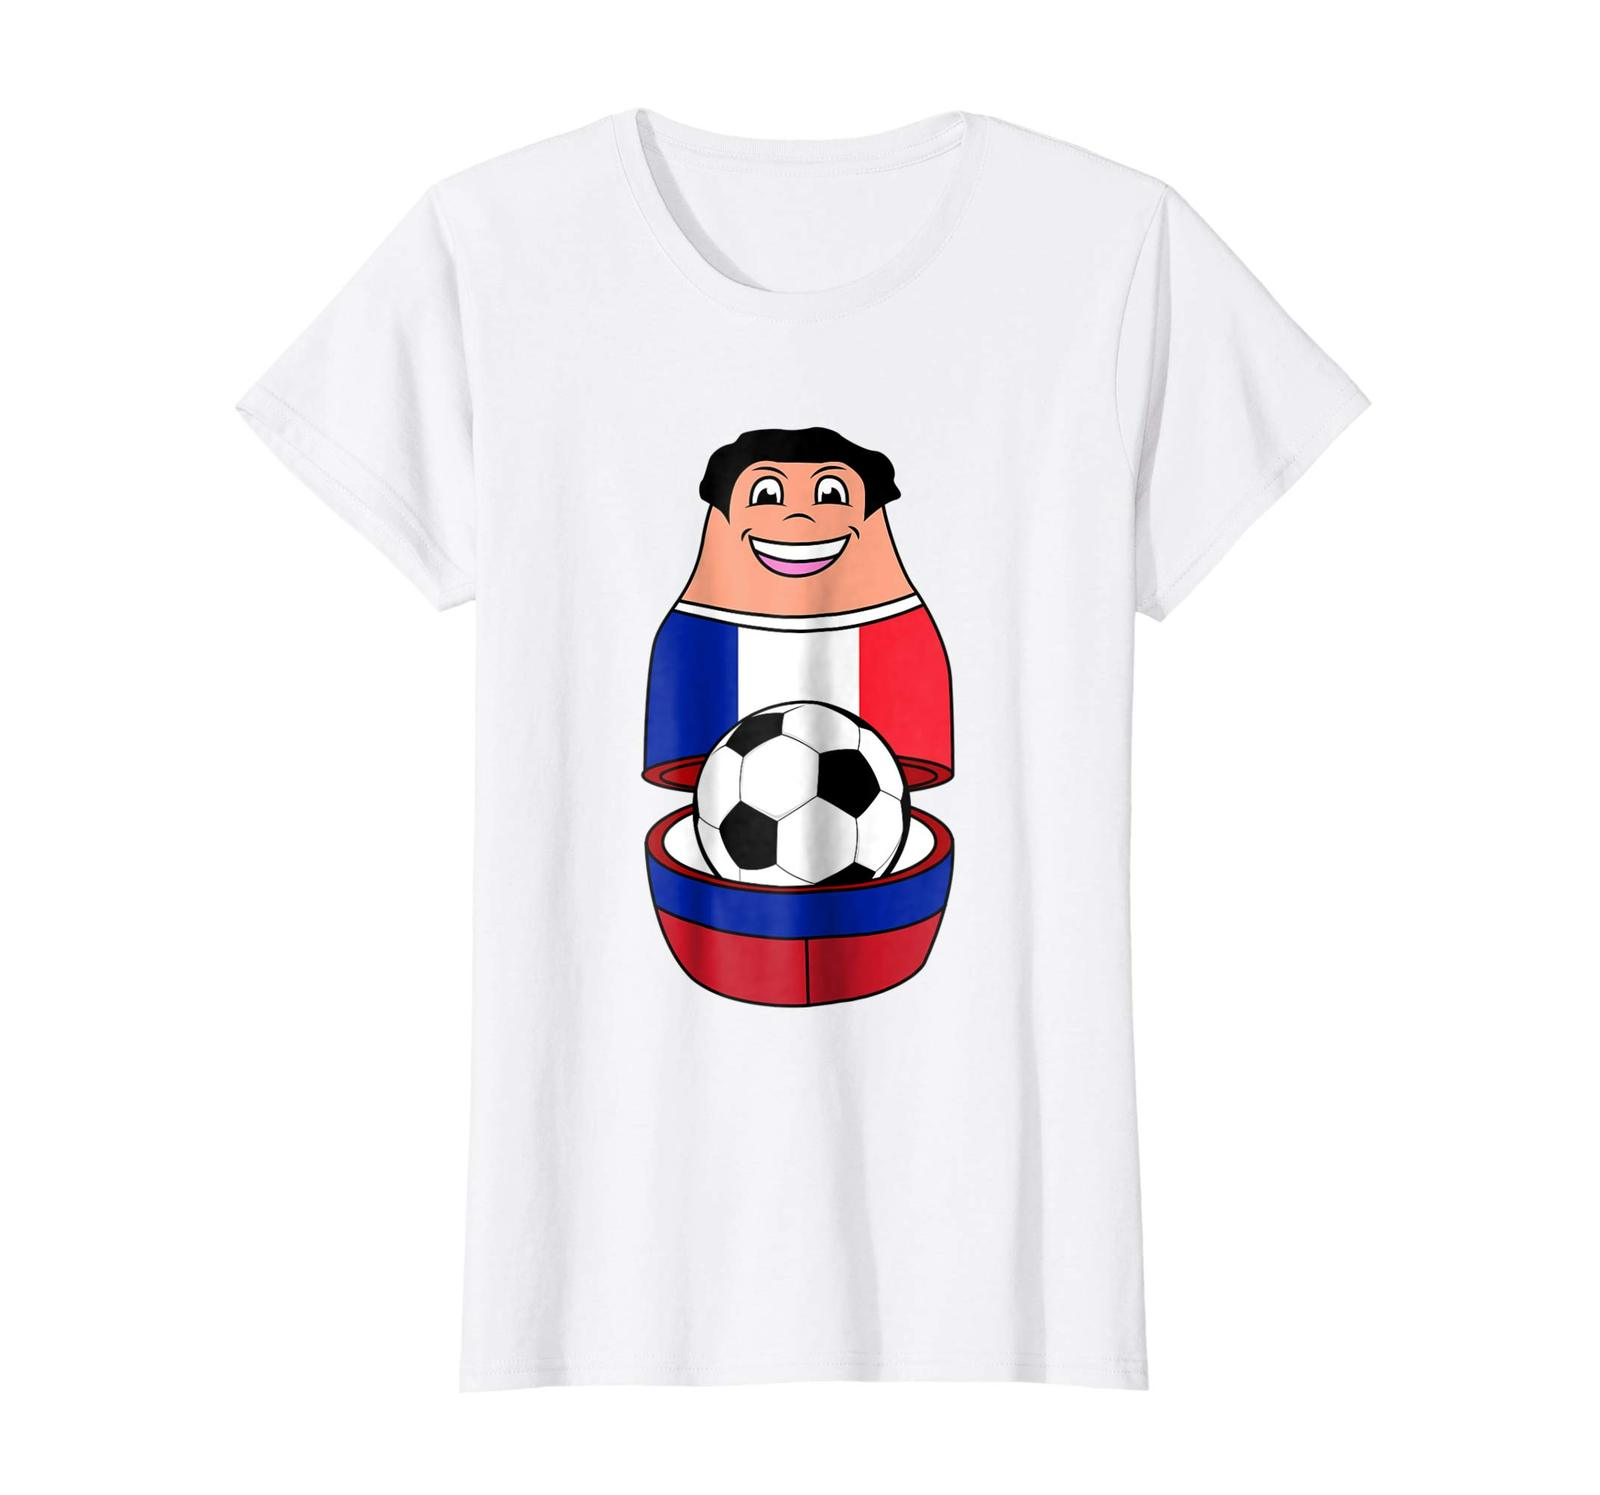 Primary image for New Shirts - France Soccer Mascot Shirt | Cool Russian Nesting Doll Gift Wowen